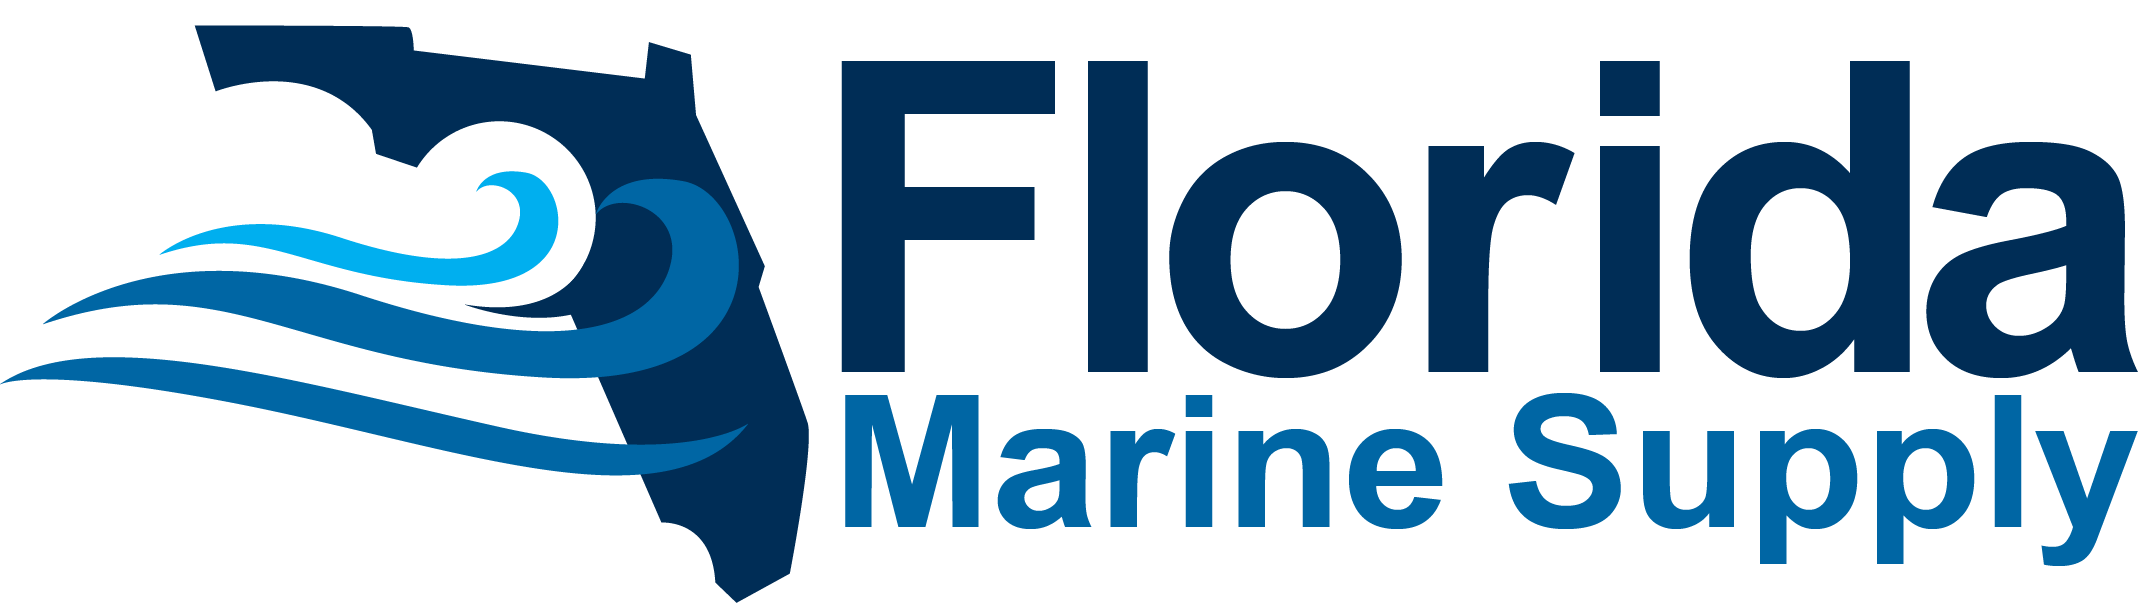 Florida Marine Supply